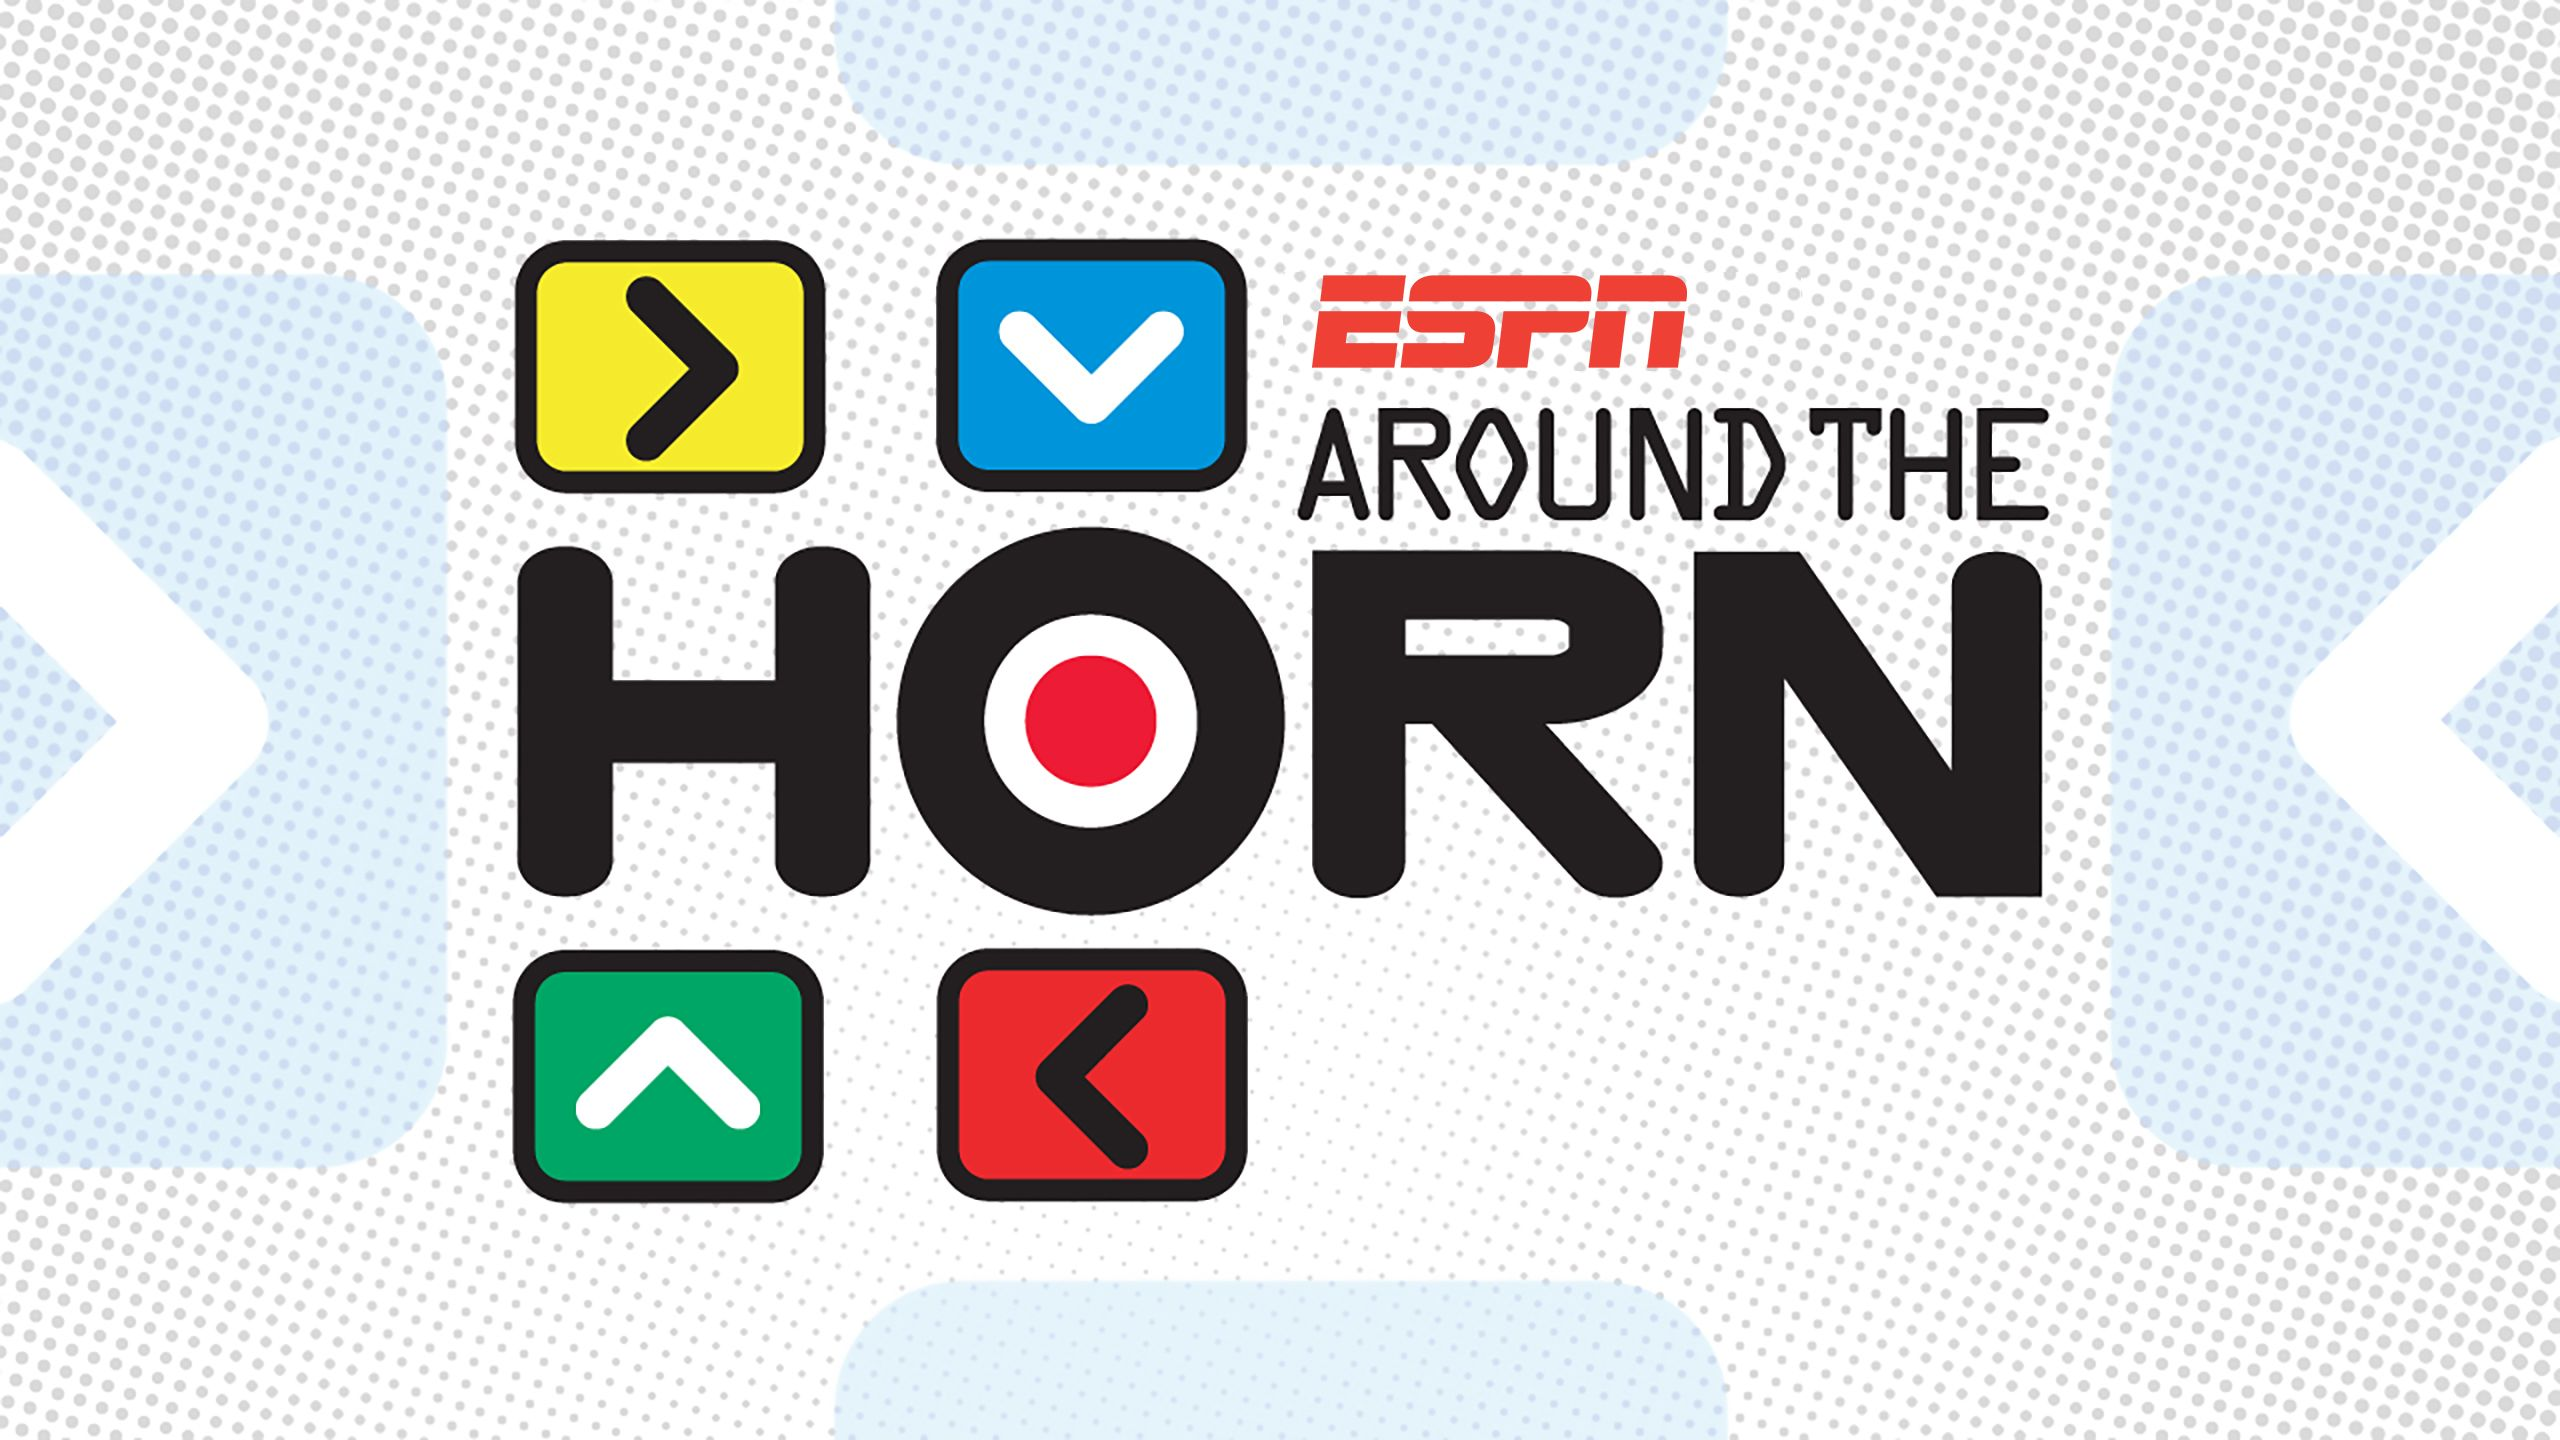 Fri, 2/16 - Around The Horn